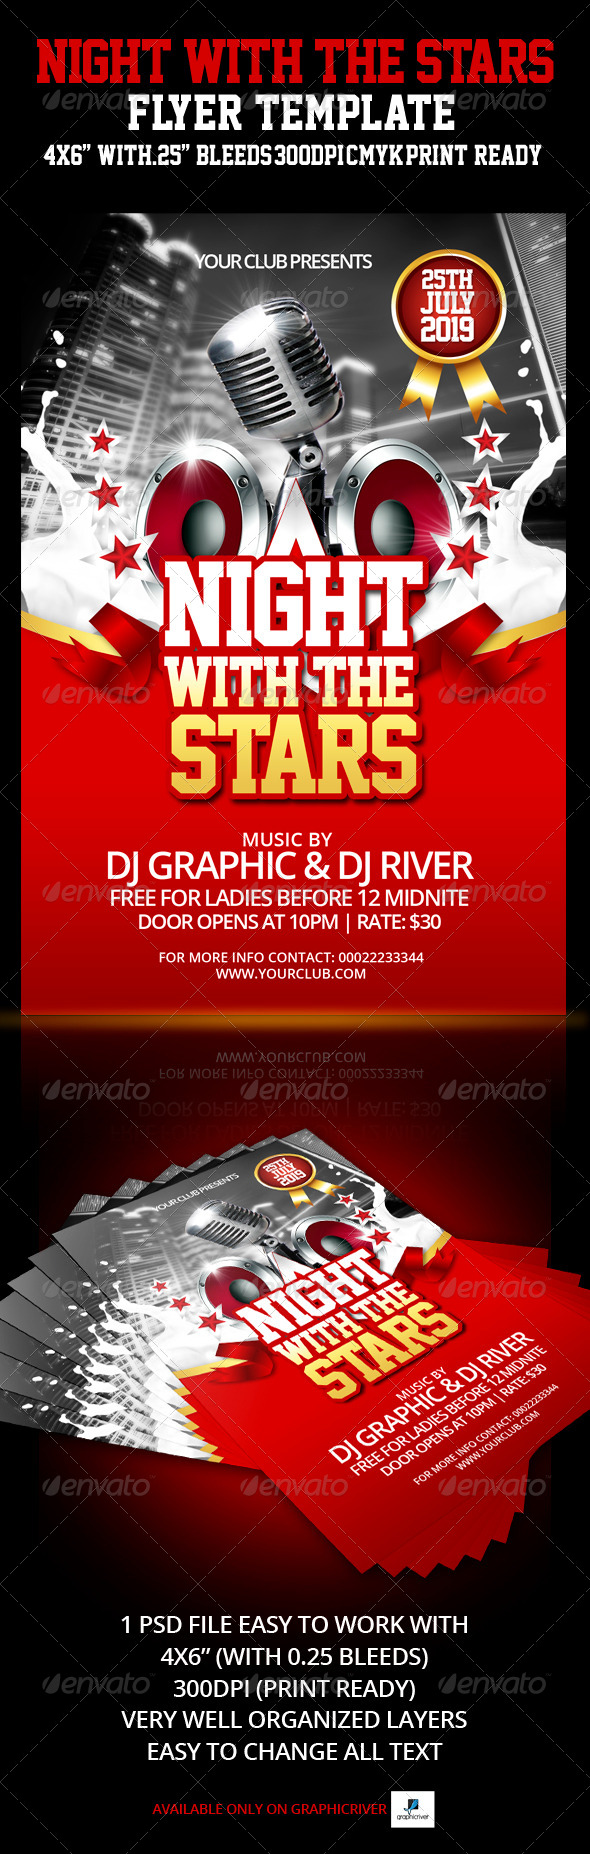 Night With The Stars Flyer Template - Flyers Print Templates